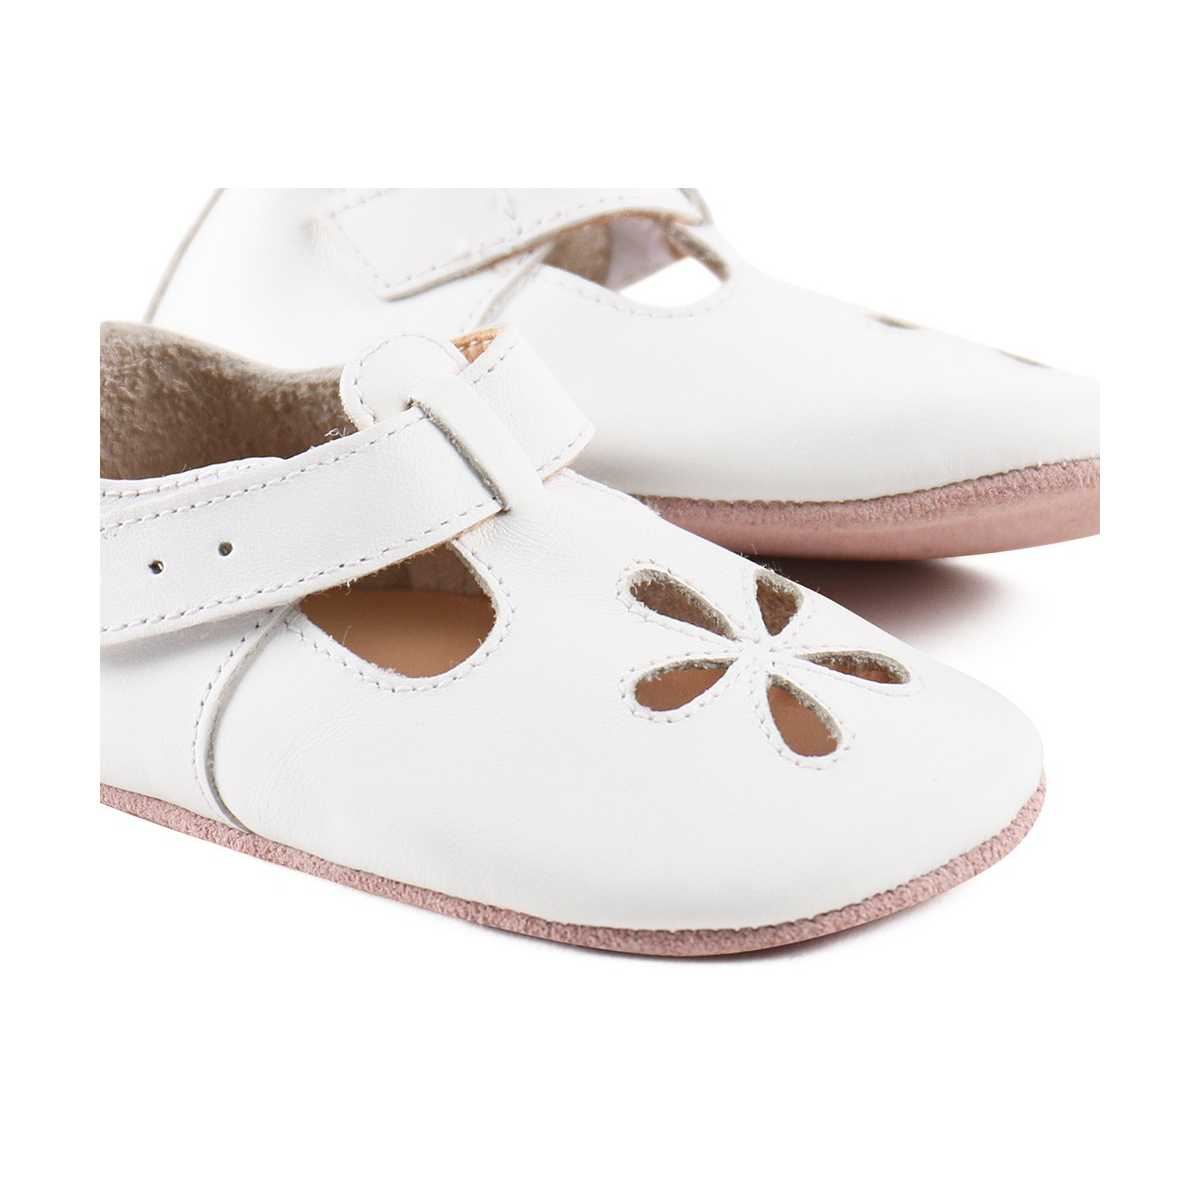 1a6322f28c565 Chaussons - Sandales blanches (Bobux) - SeBio